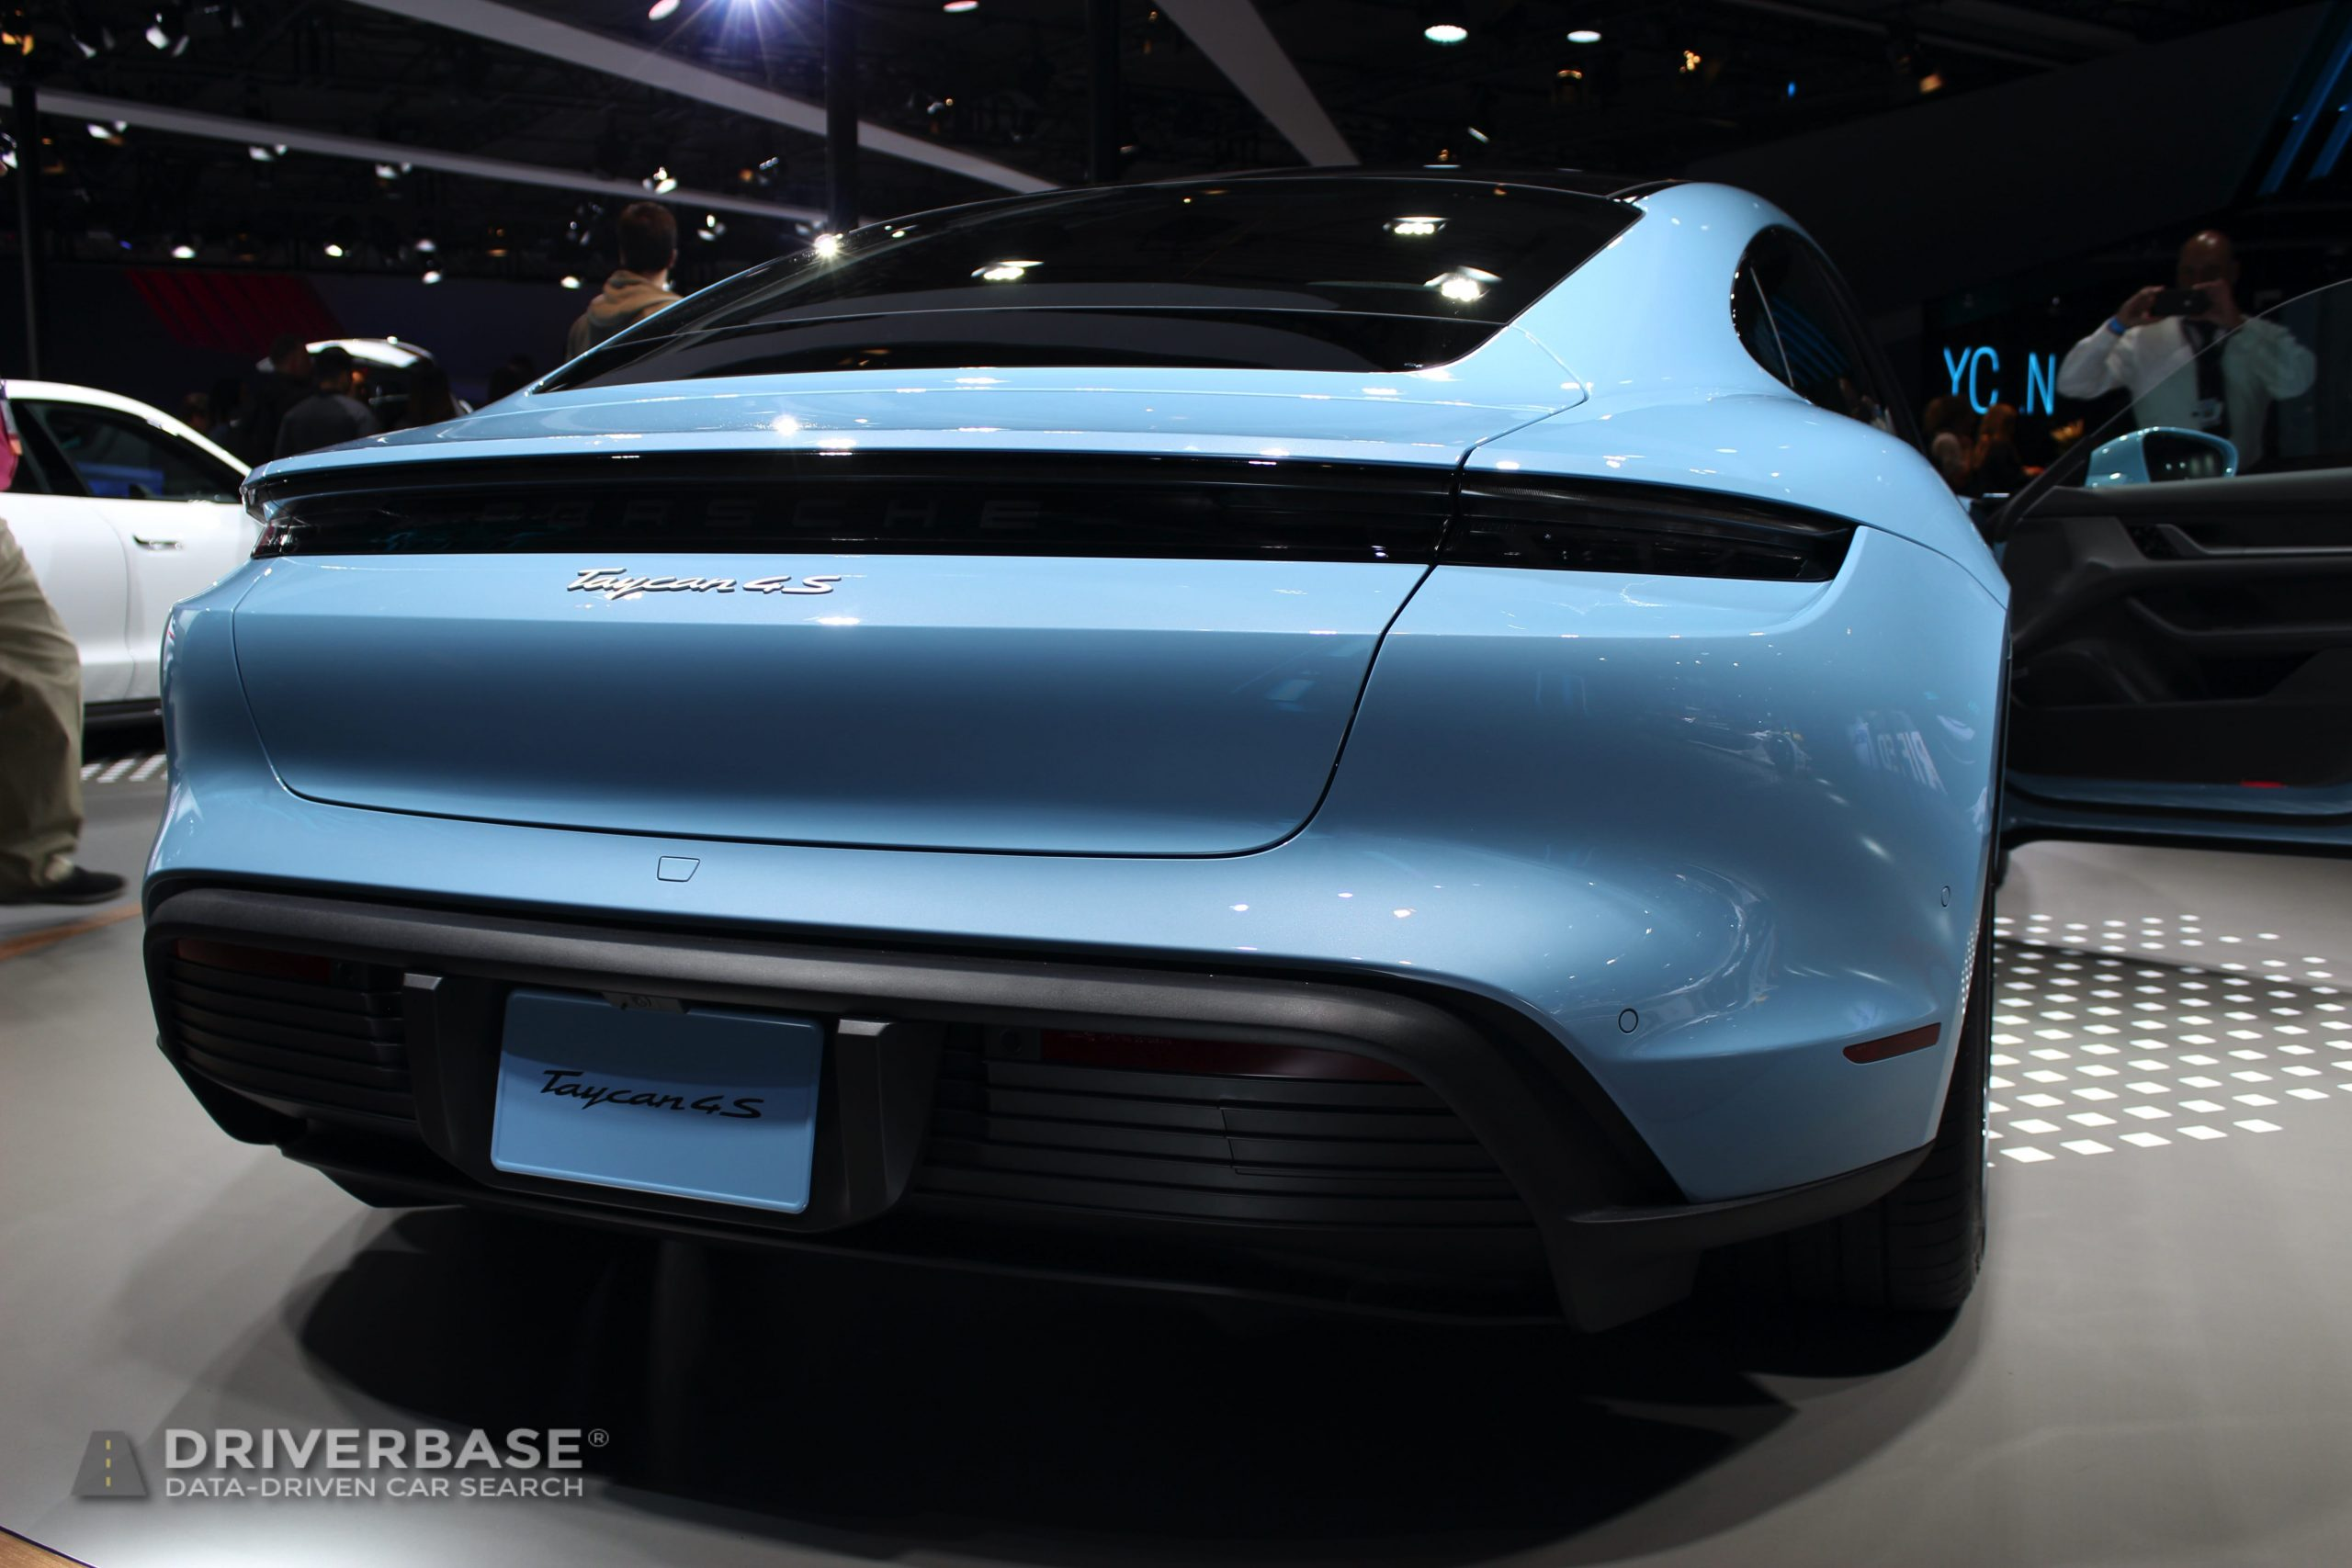 2020 Porsche Taycan 4S at the 2019 Los Angeles Auto Show